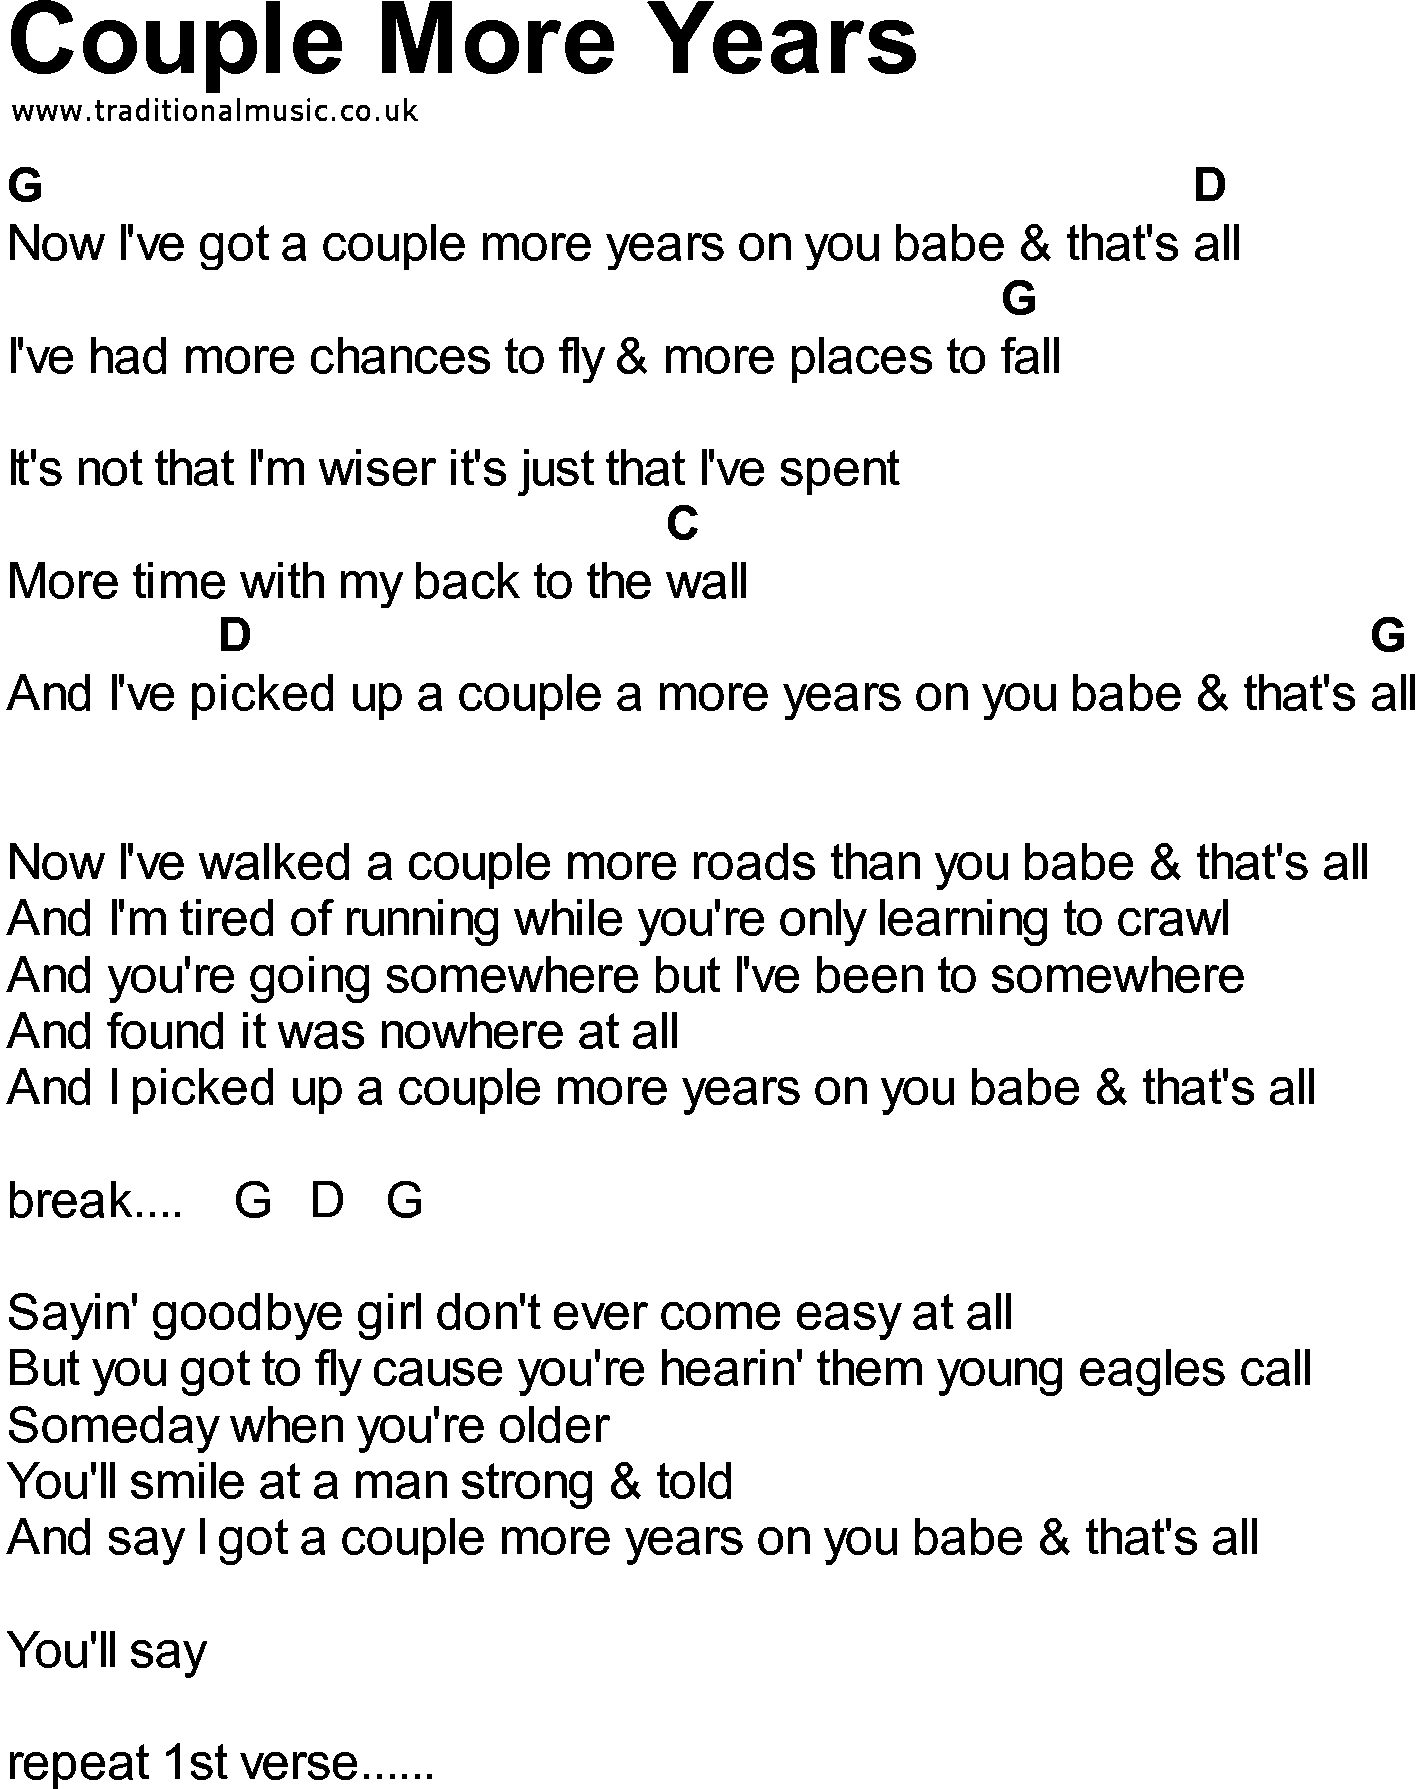 Bluegrass songs with chords - Couple More Years